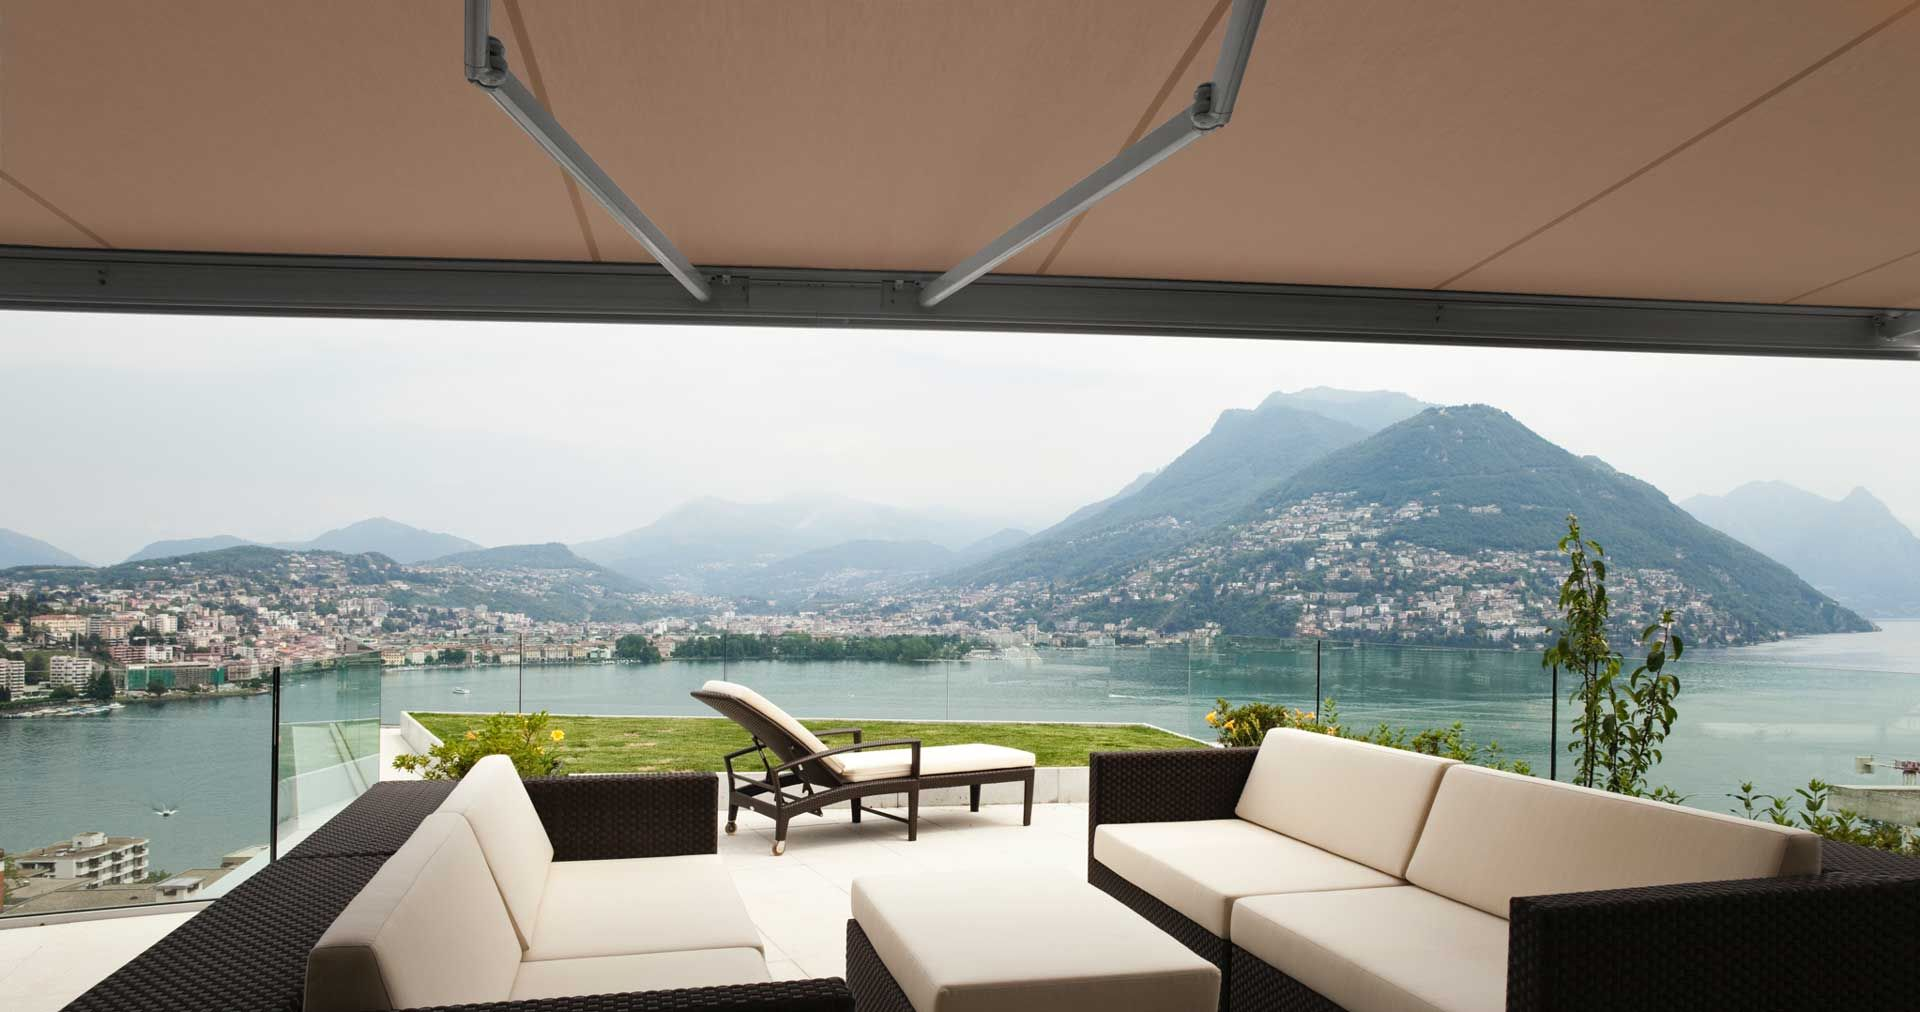 Awnings for mobile home